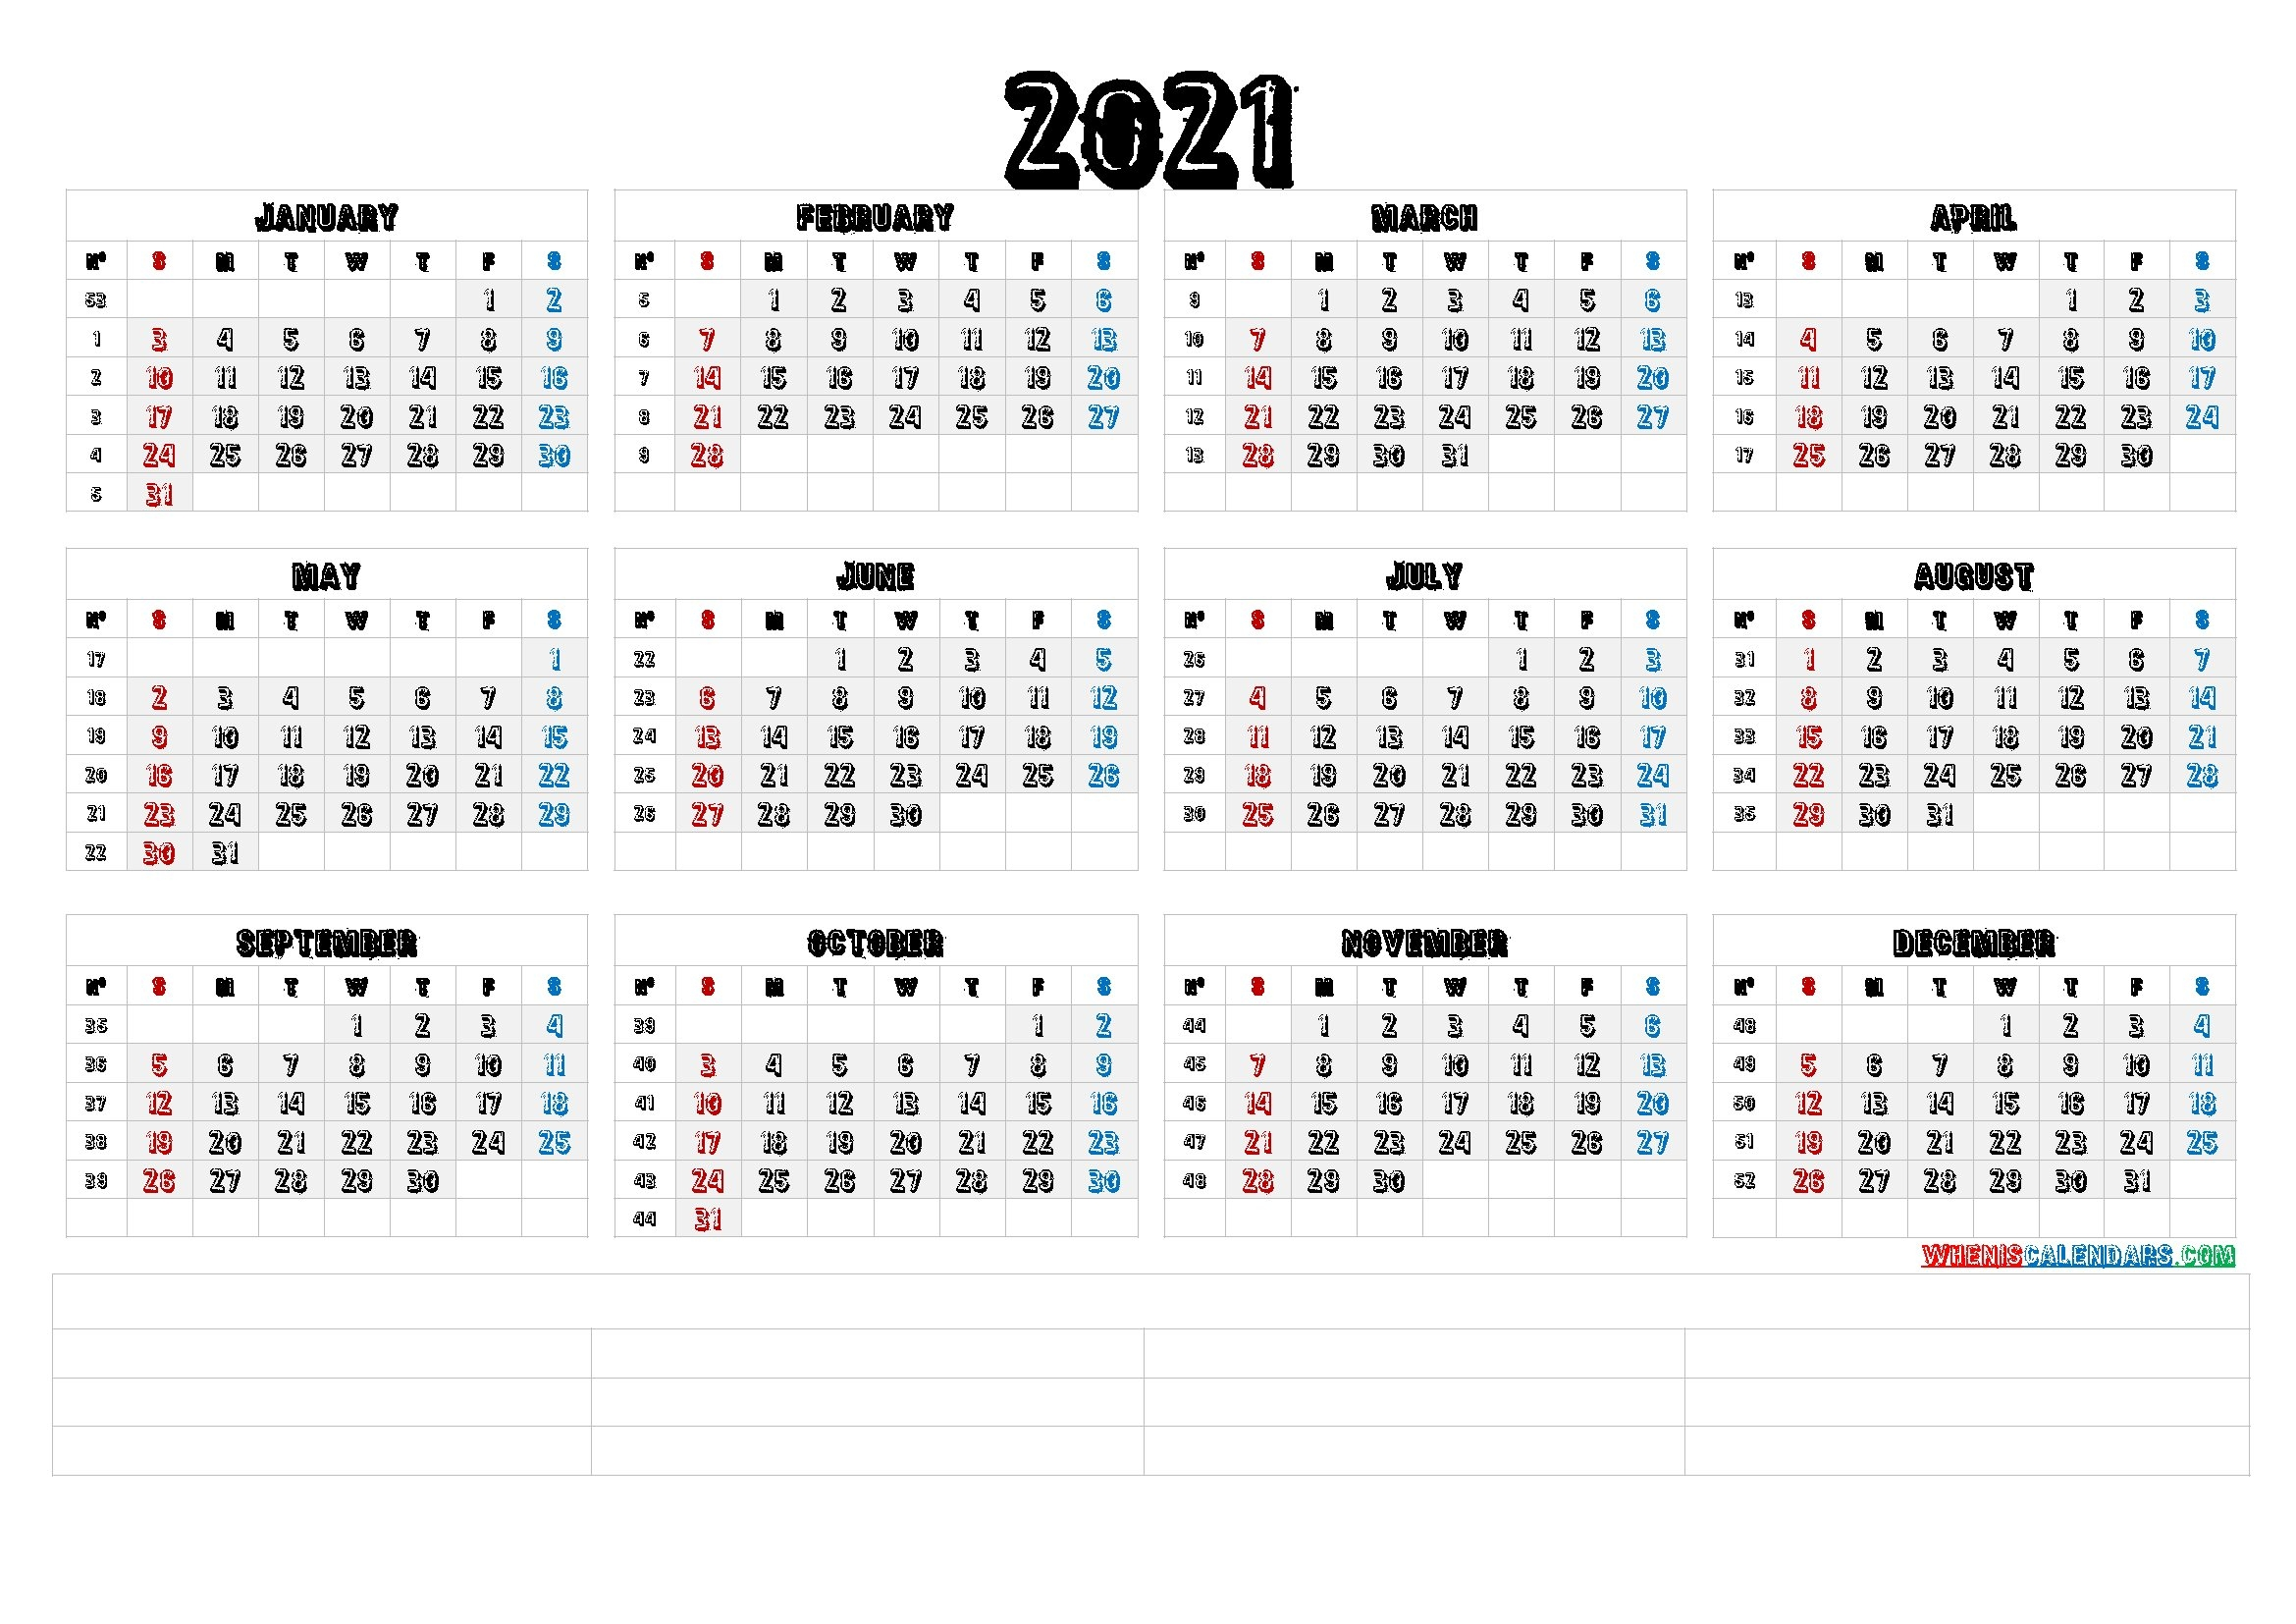 2021 Calendar With Week Numbers Printable (6 Templates) - Free Printable 2020 Monthly Calendar with regard to Weeks Of The Year Calendar 2021